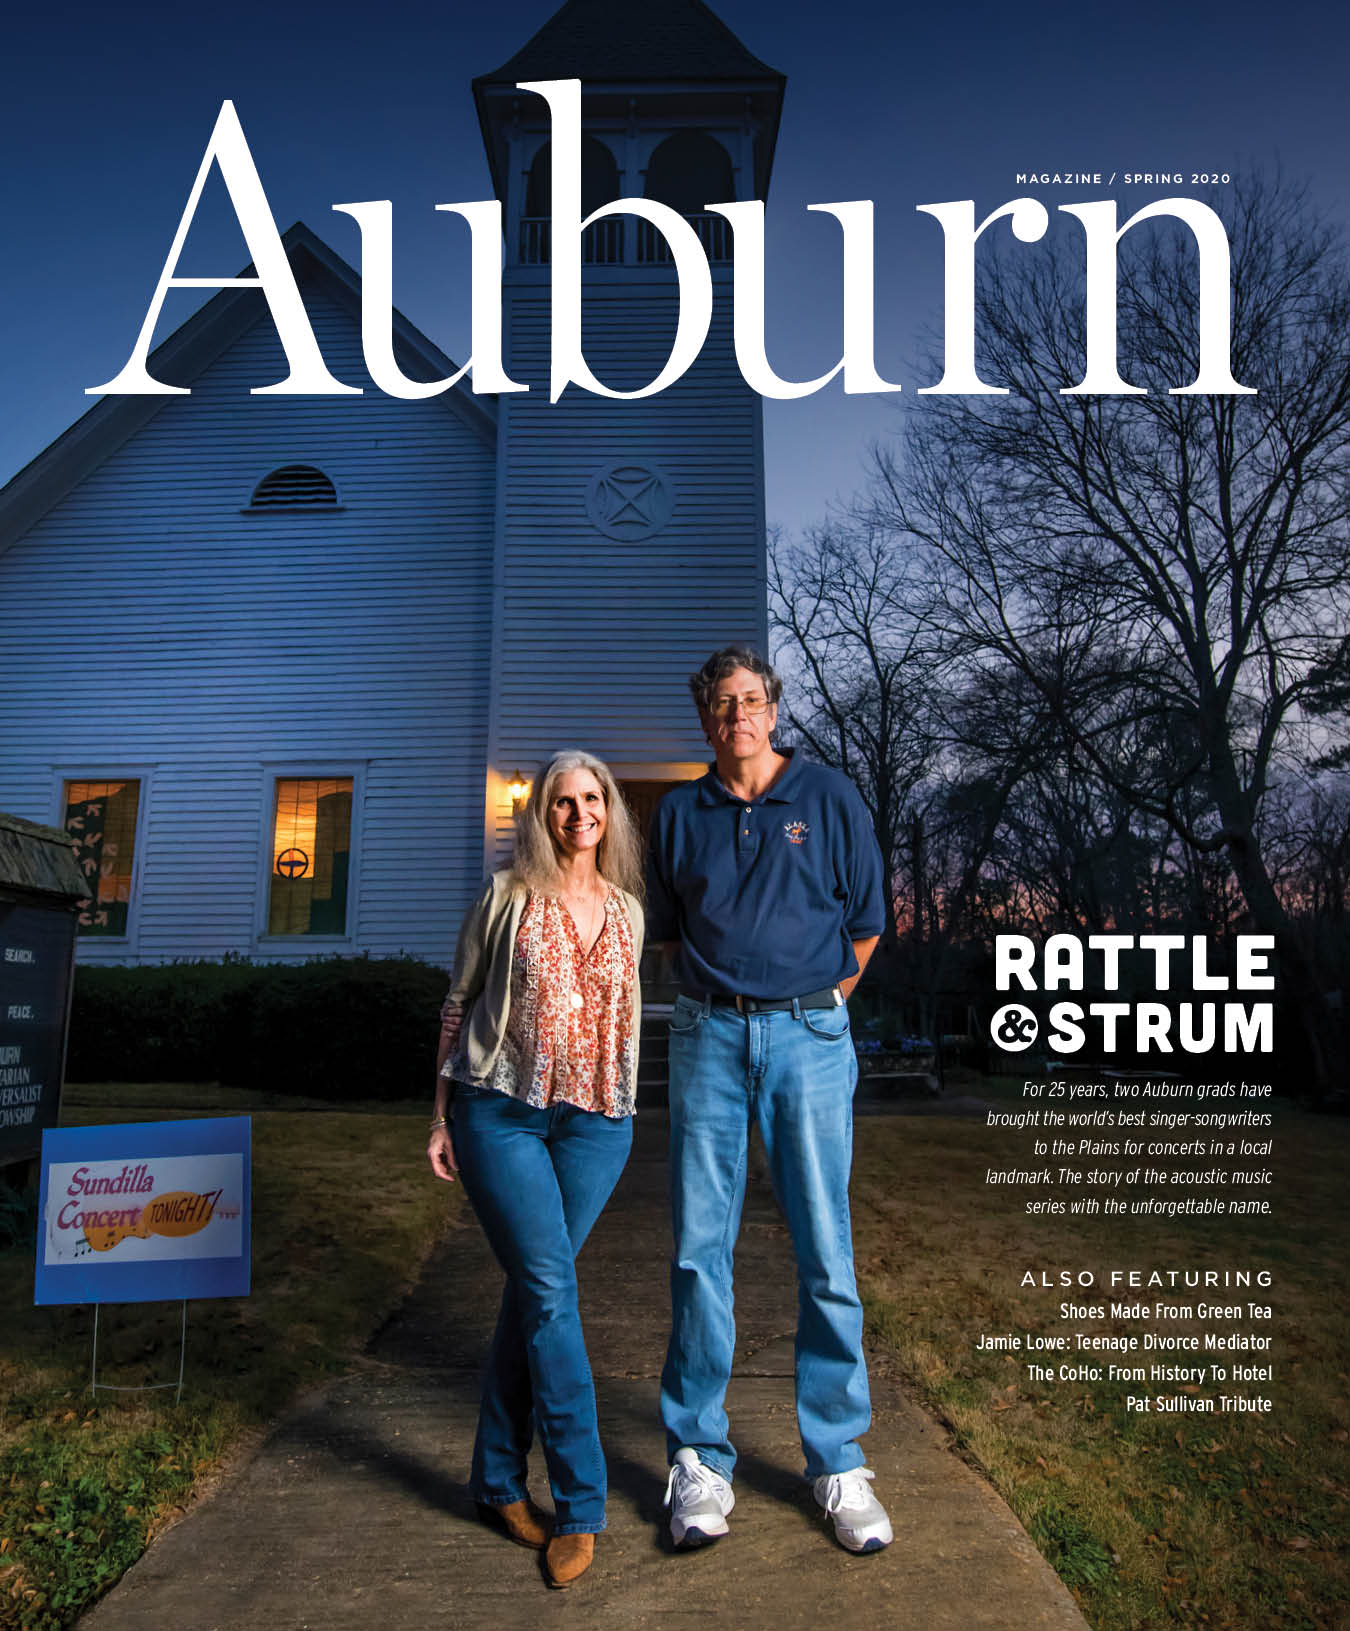 Auburn Magazine Spring 2020 feature Rattle and Strum For 25 years, two Auburn grads have brought the world's best singer-songwriters to the Plains for concerts in a local landmark. The story of the acoustic music series with the unforgettable name. Also featuring Shoes Made From Green Tea, Jamie Lowe: Teenage Divorce Mediator, The CoHo: From History To Hotel and Pat Sullivan Tribute